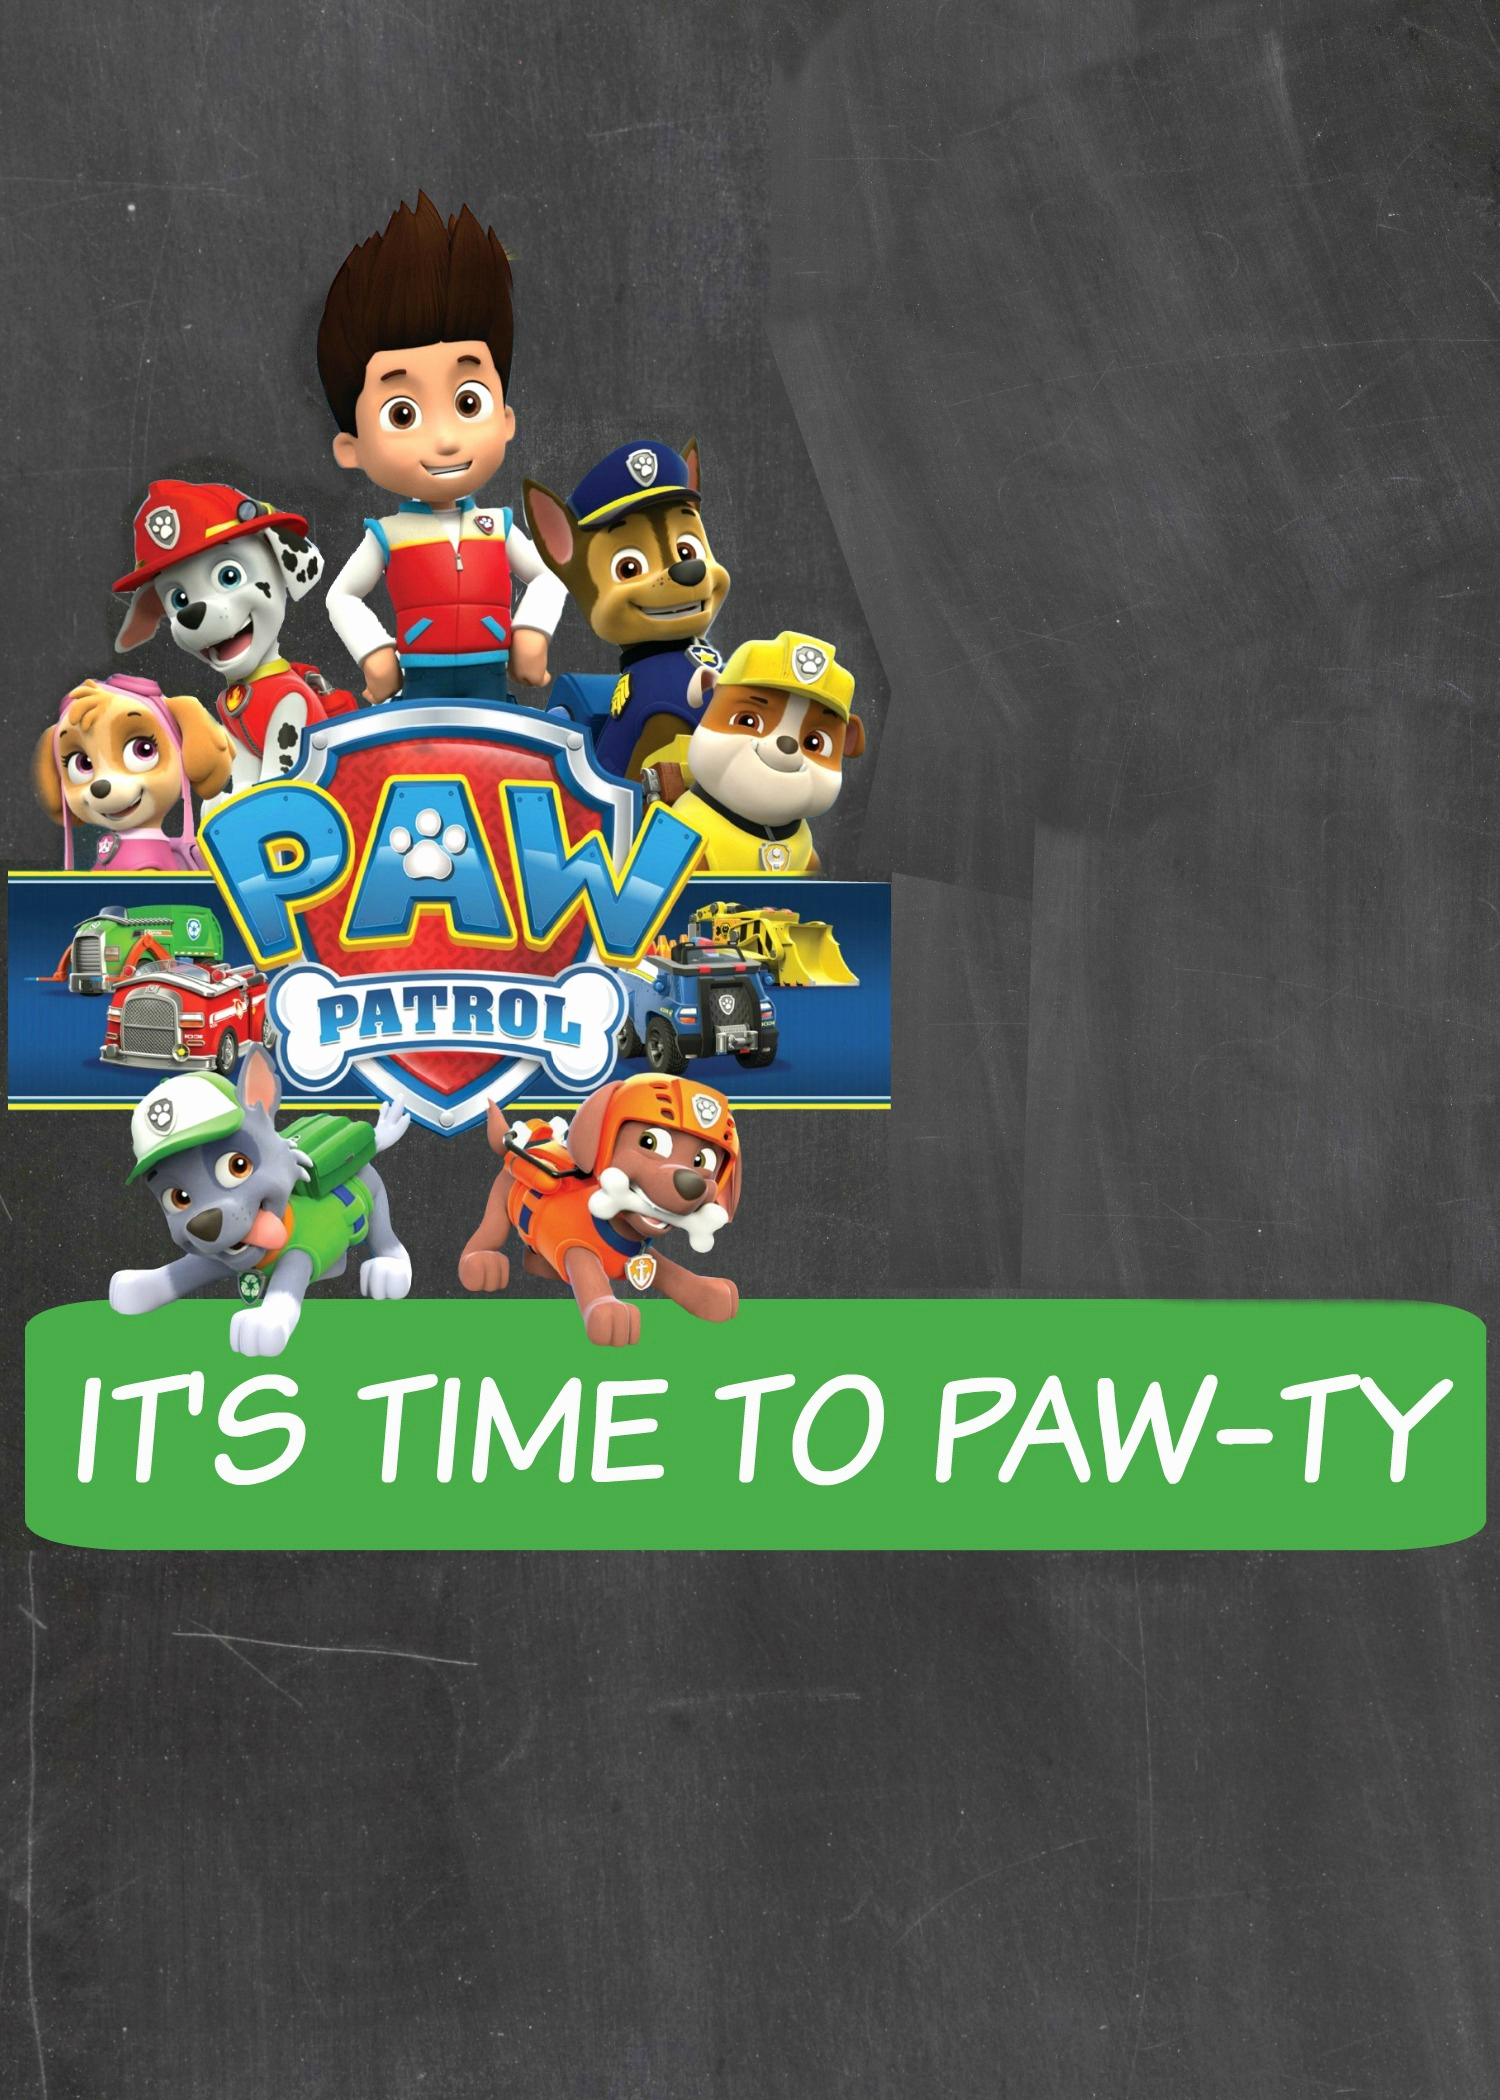 Paw Patrol Invitation Template Blank Inspirational How to Make A Paw Patrol Digital Invitation